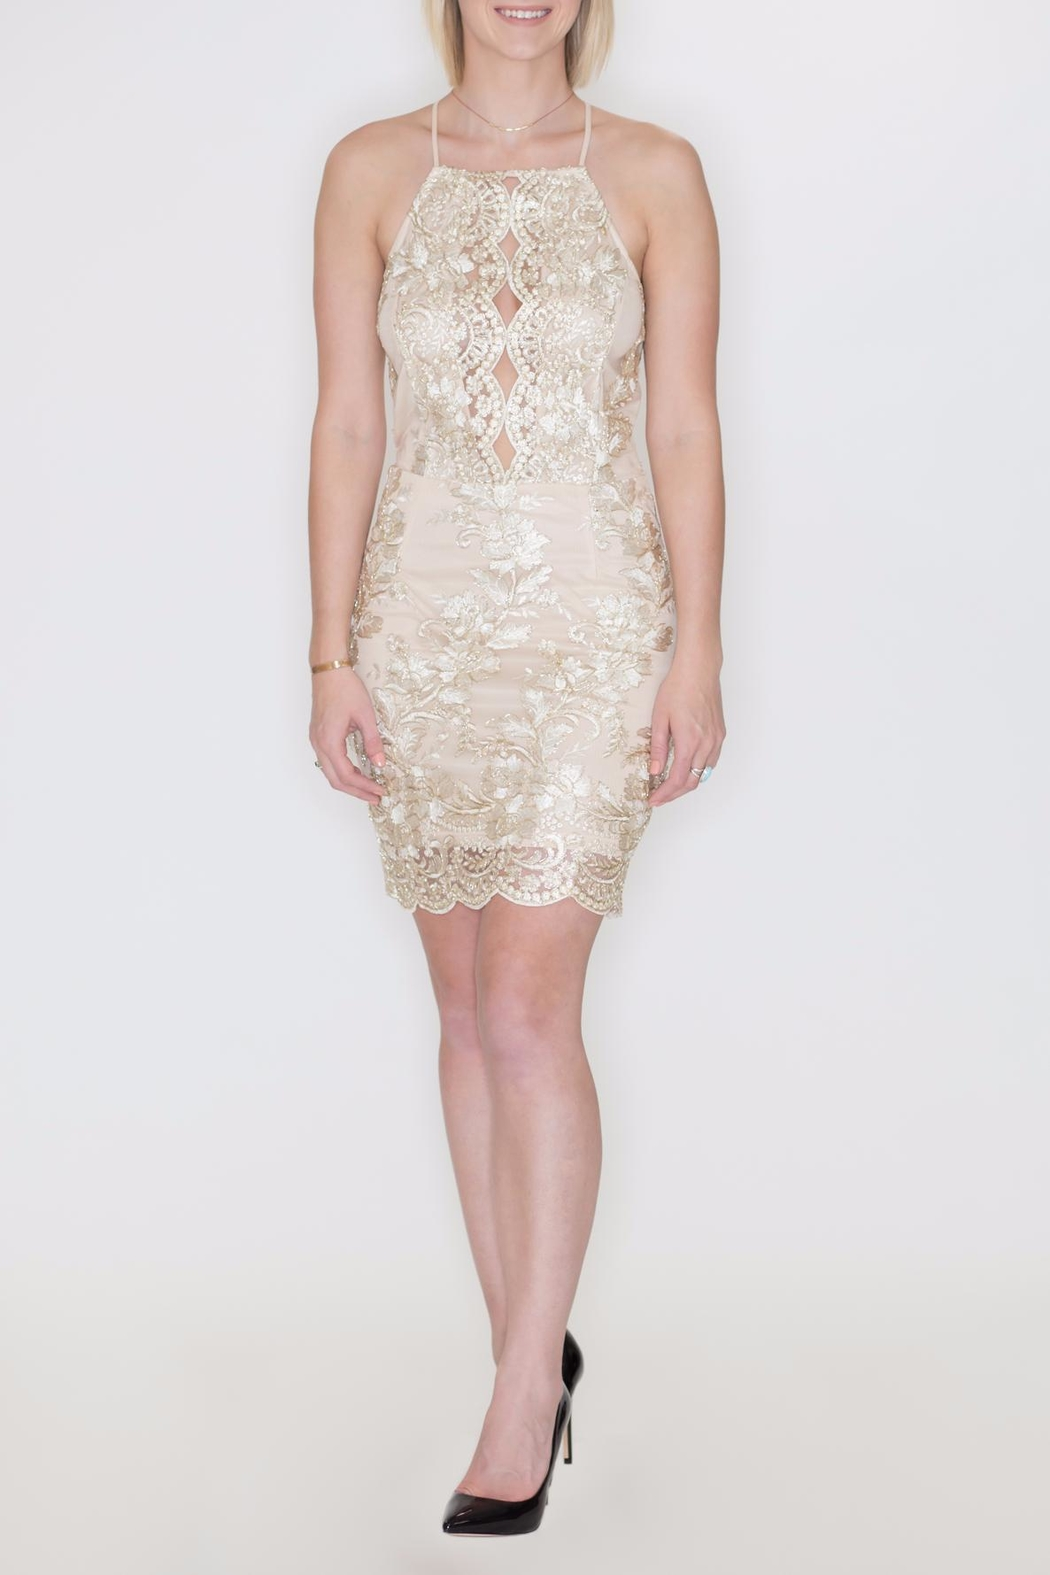 She + Sky Metallic Embroidery Dress - Main Image